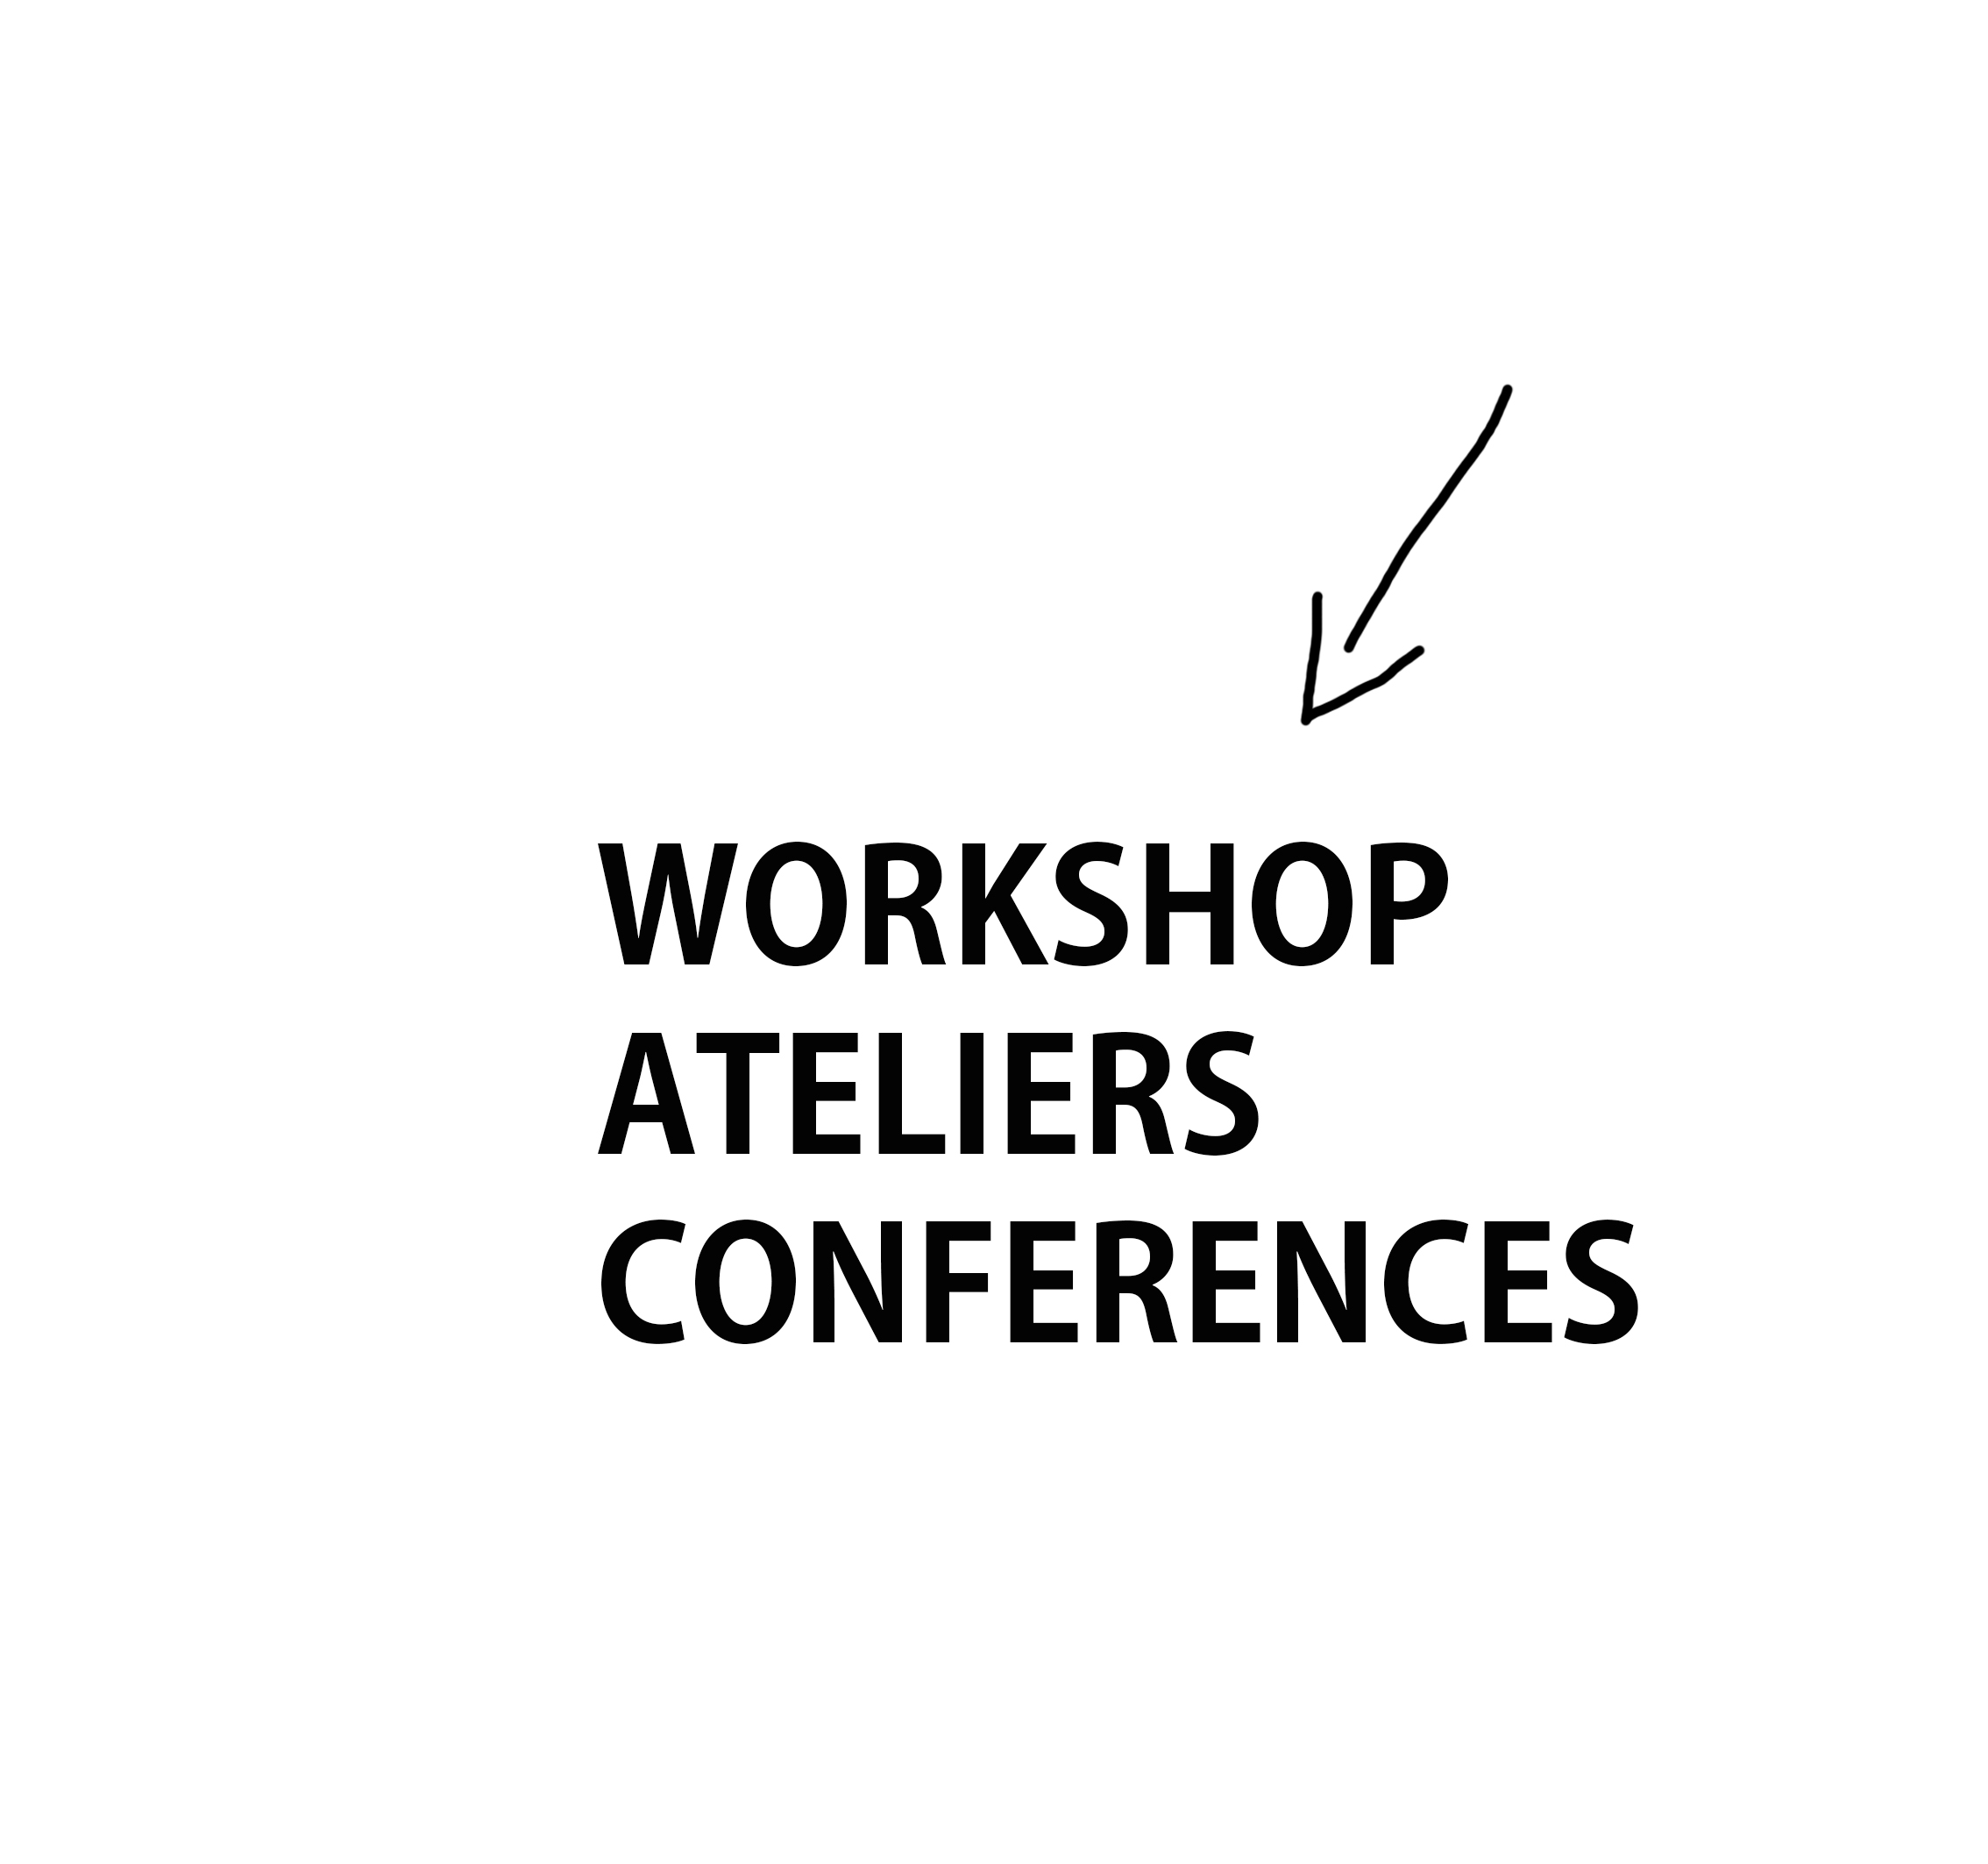 WORKSHOP ATELIER CONFERENCE